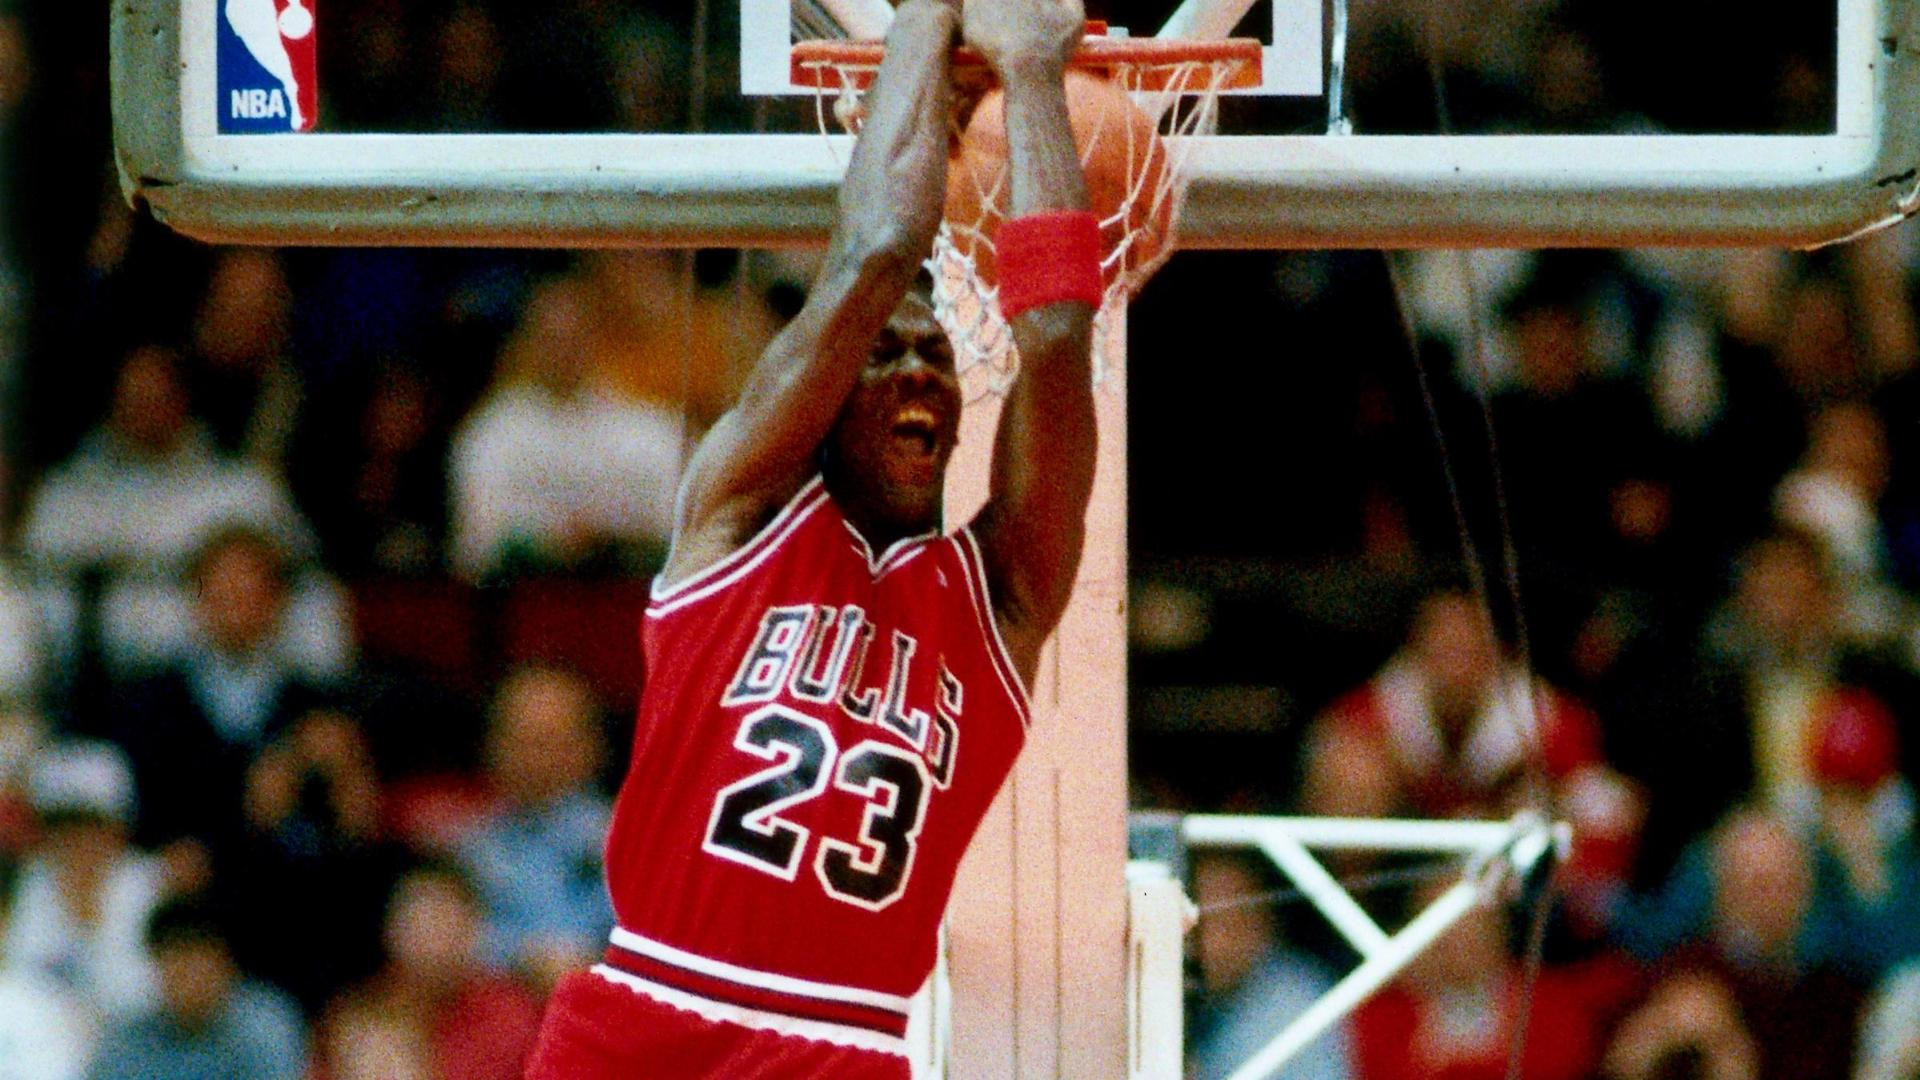 Relive the 1988 dunk contest